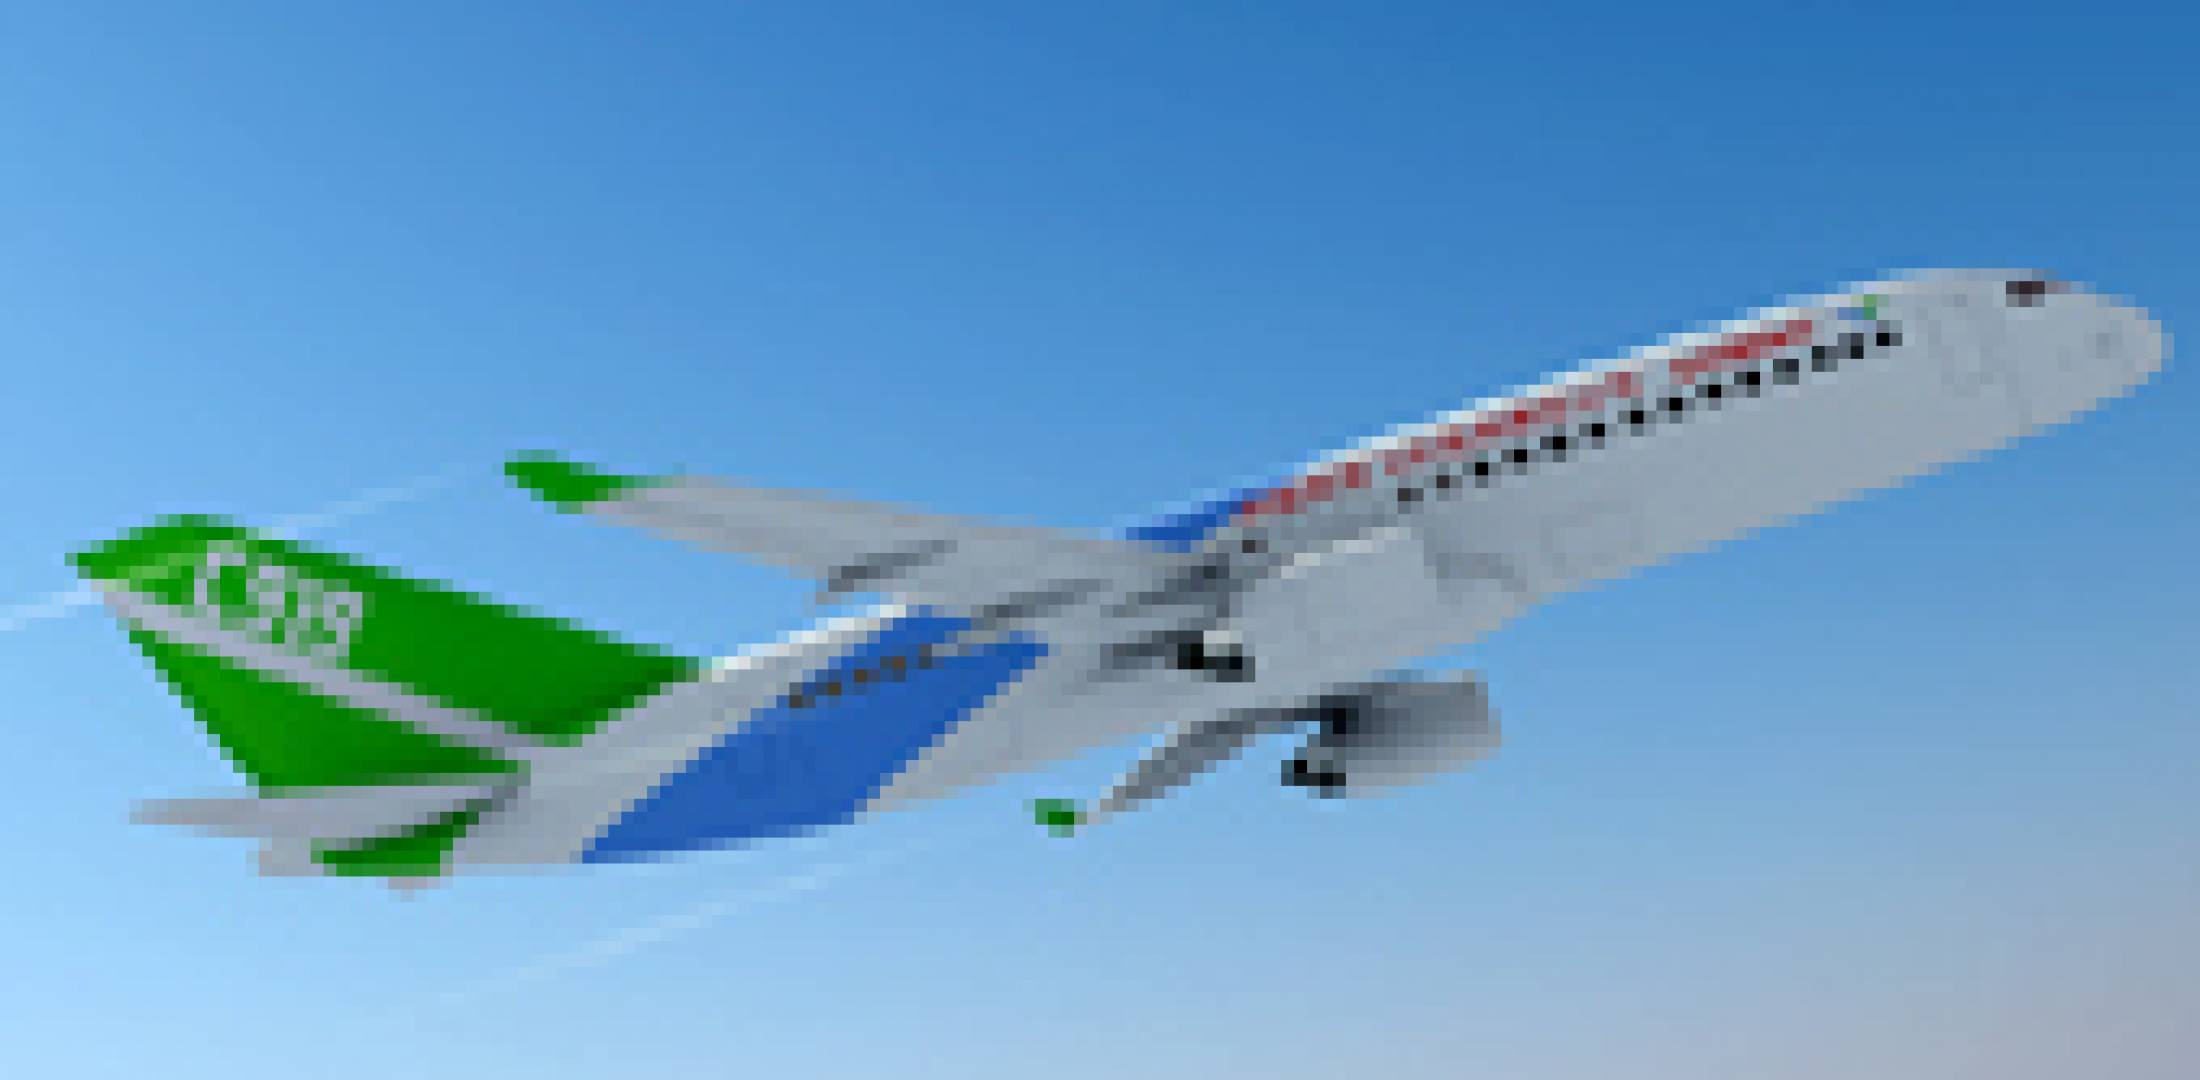 Comac announced at Asian Aerospace that it has completed the preliminary desi...